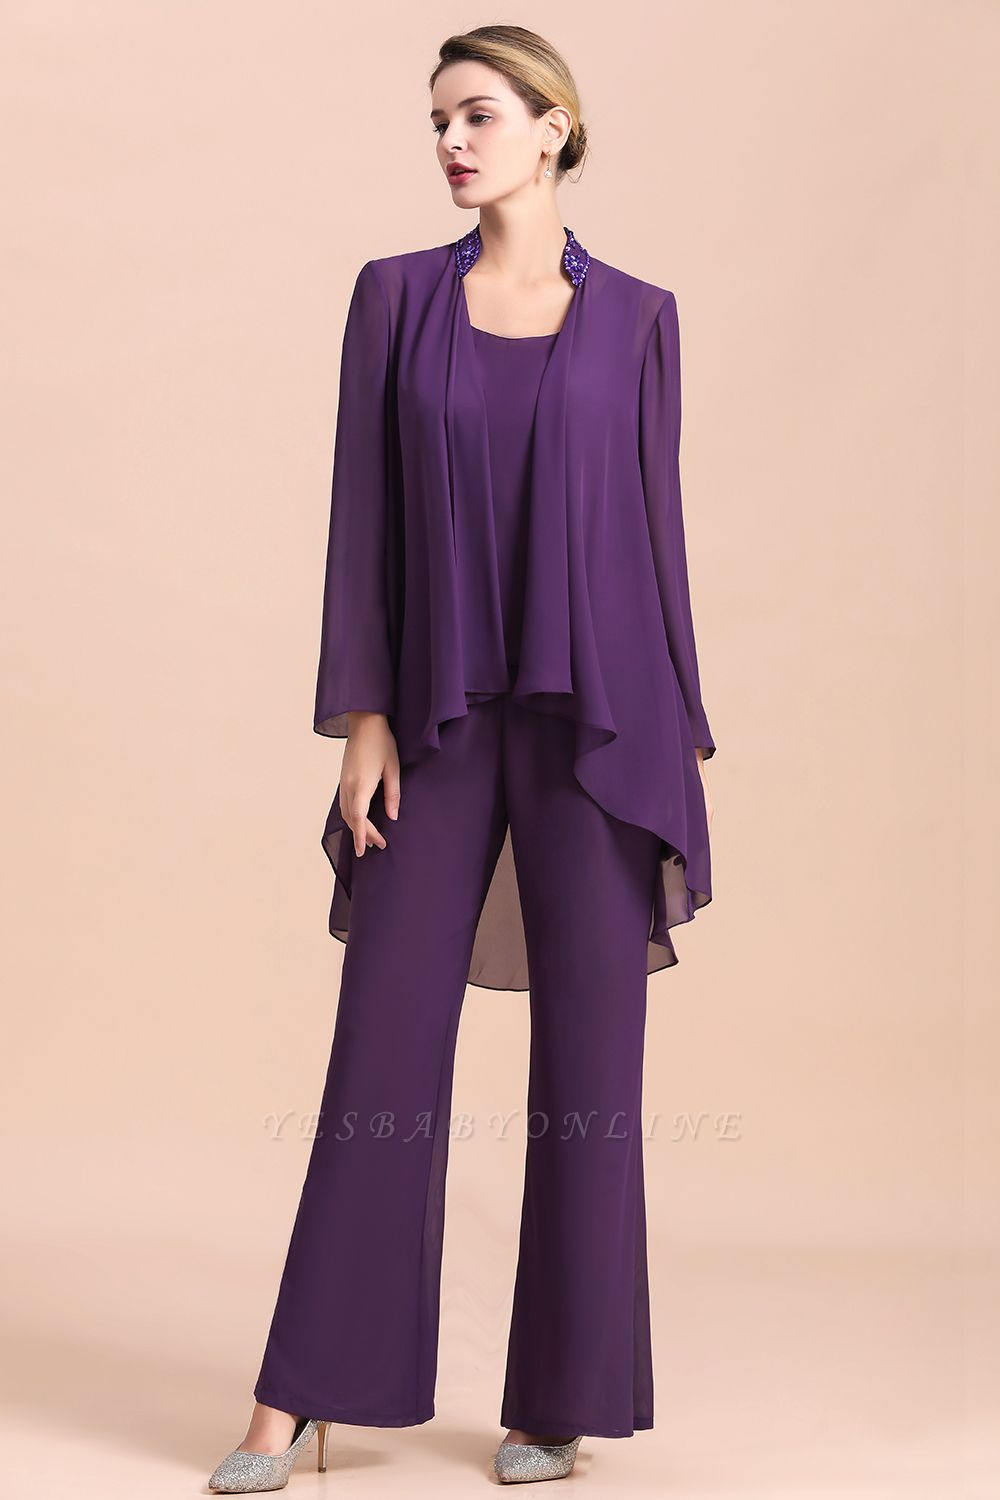 Grape Chiffon Mother of Bride Jumpsuit with Long-Sleeve Jacket